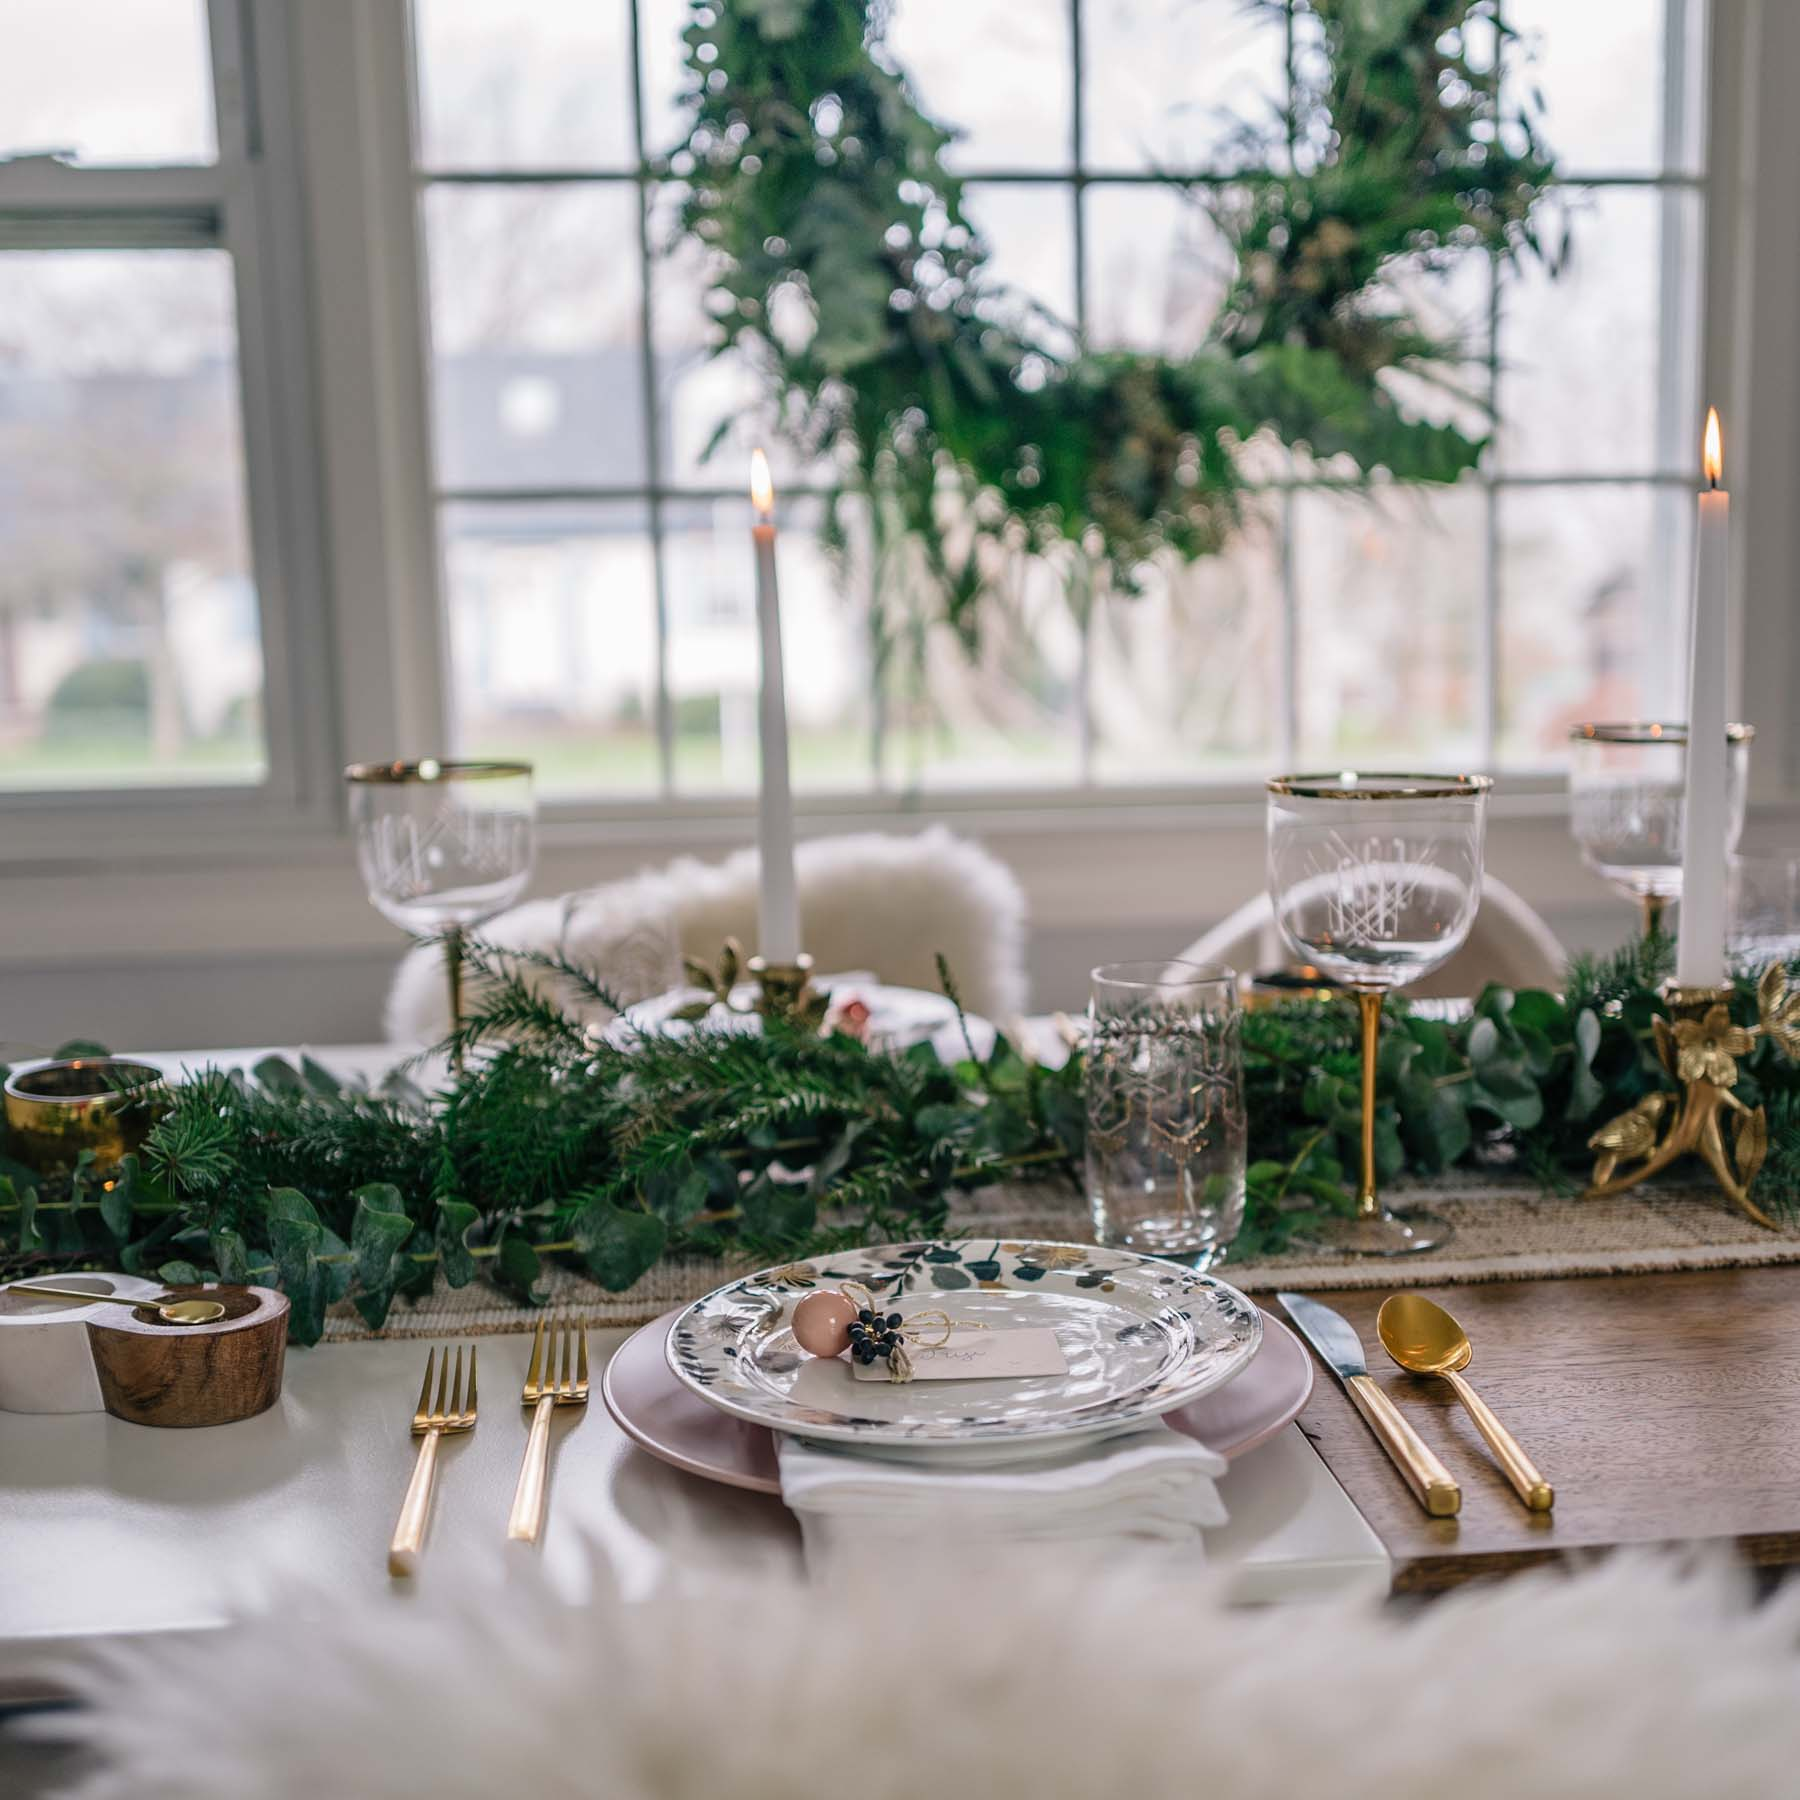 Jess Ann Kirby styles a rustic and minimal holiday tablescape with greenery and glassware from Anthropologie